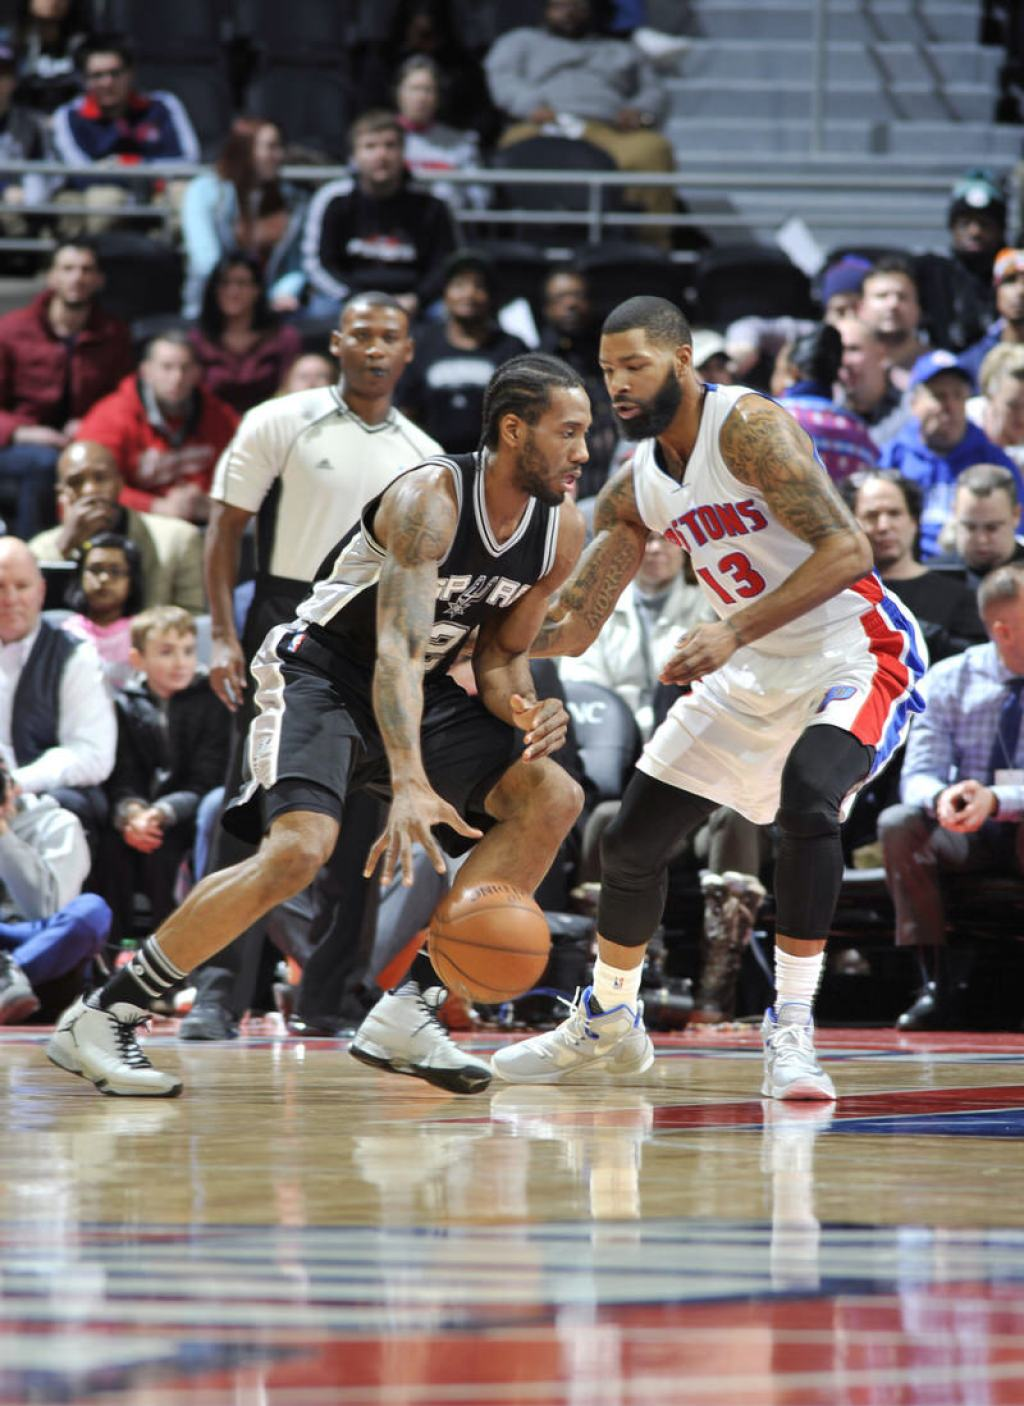 Kawhi Leonard and Marcus Morris wearing an Air Jordan XX9 PE and a Nike LeBron 13 iD, respectively